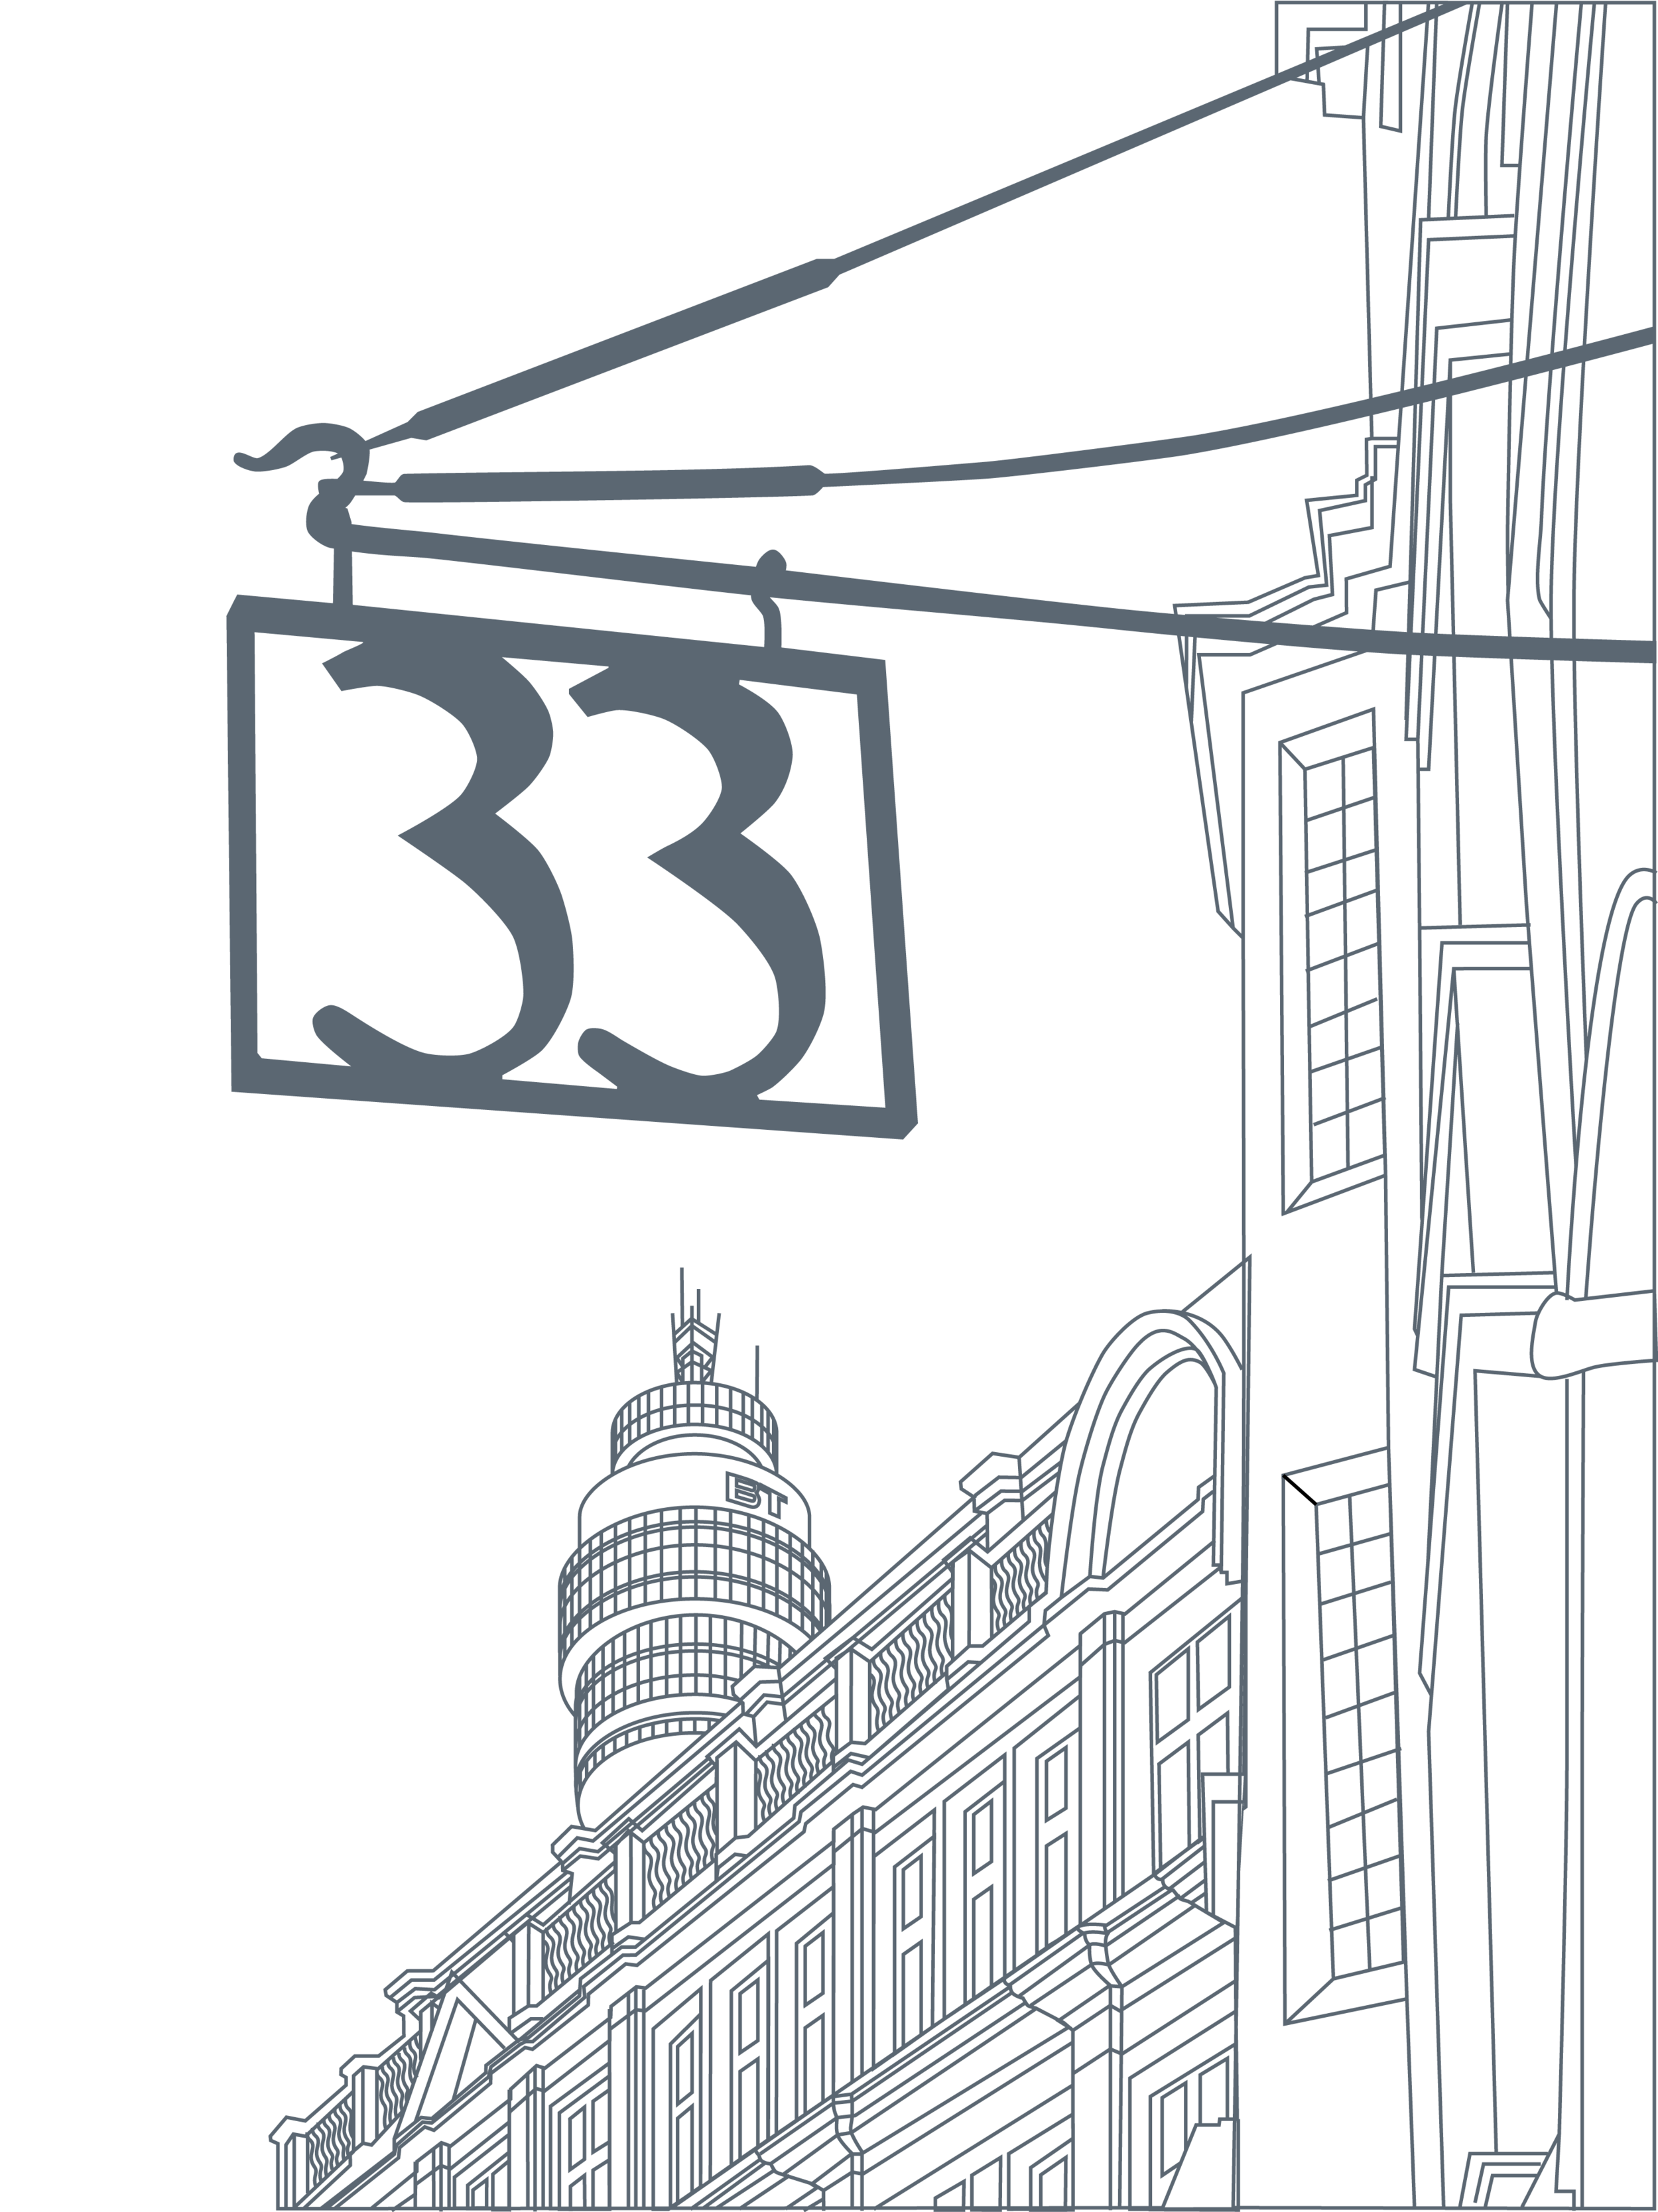 33NewmanSt-03.png